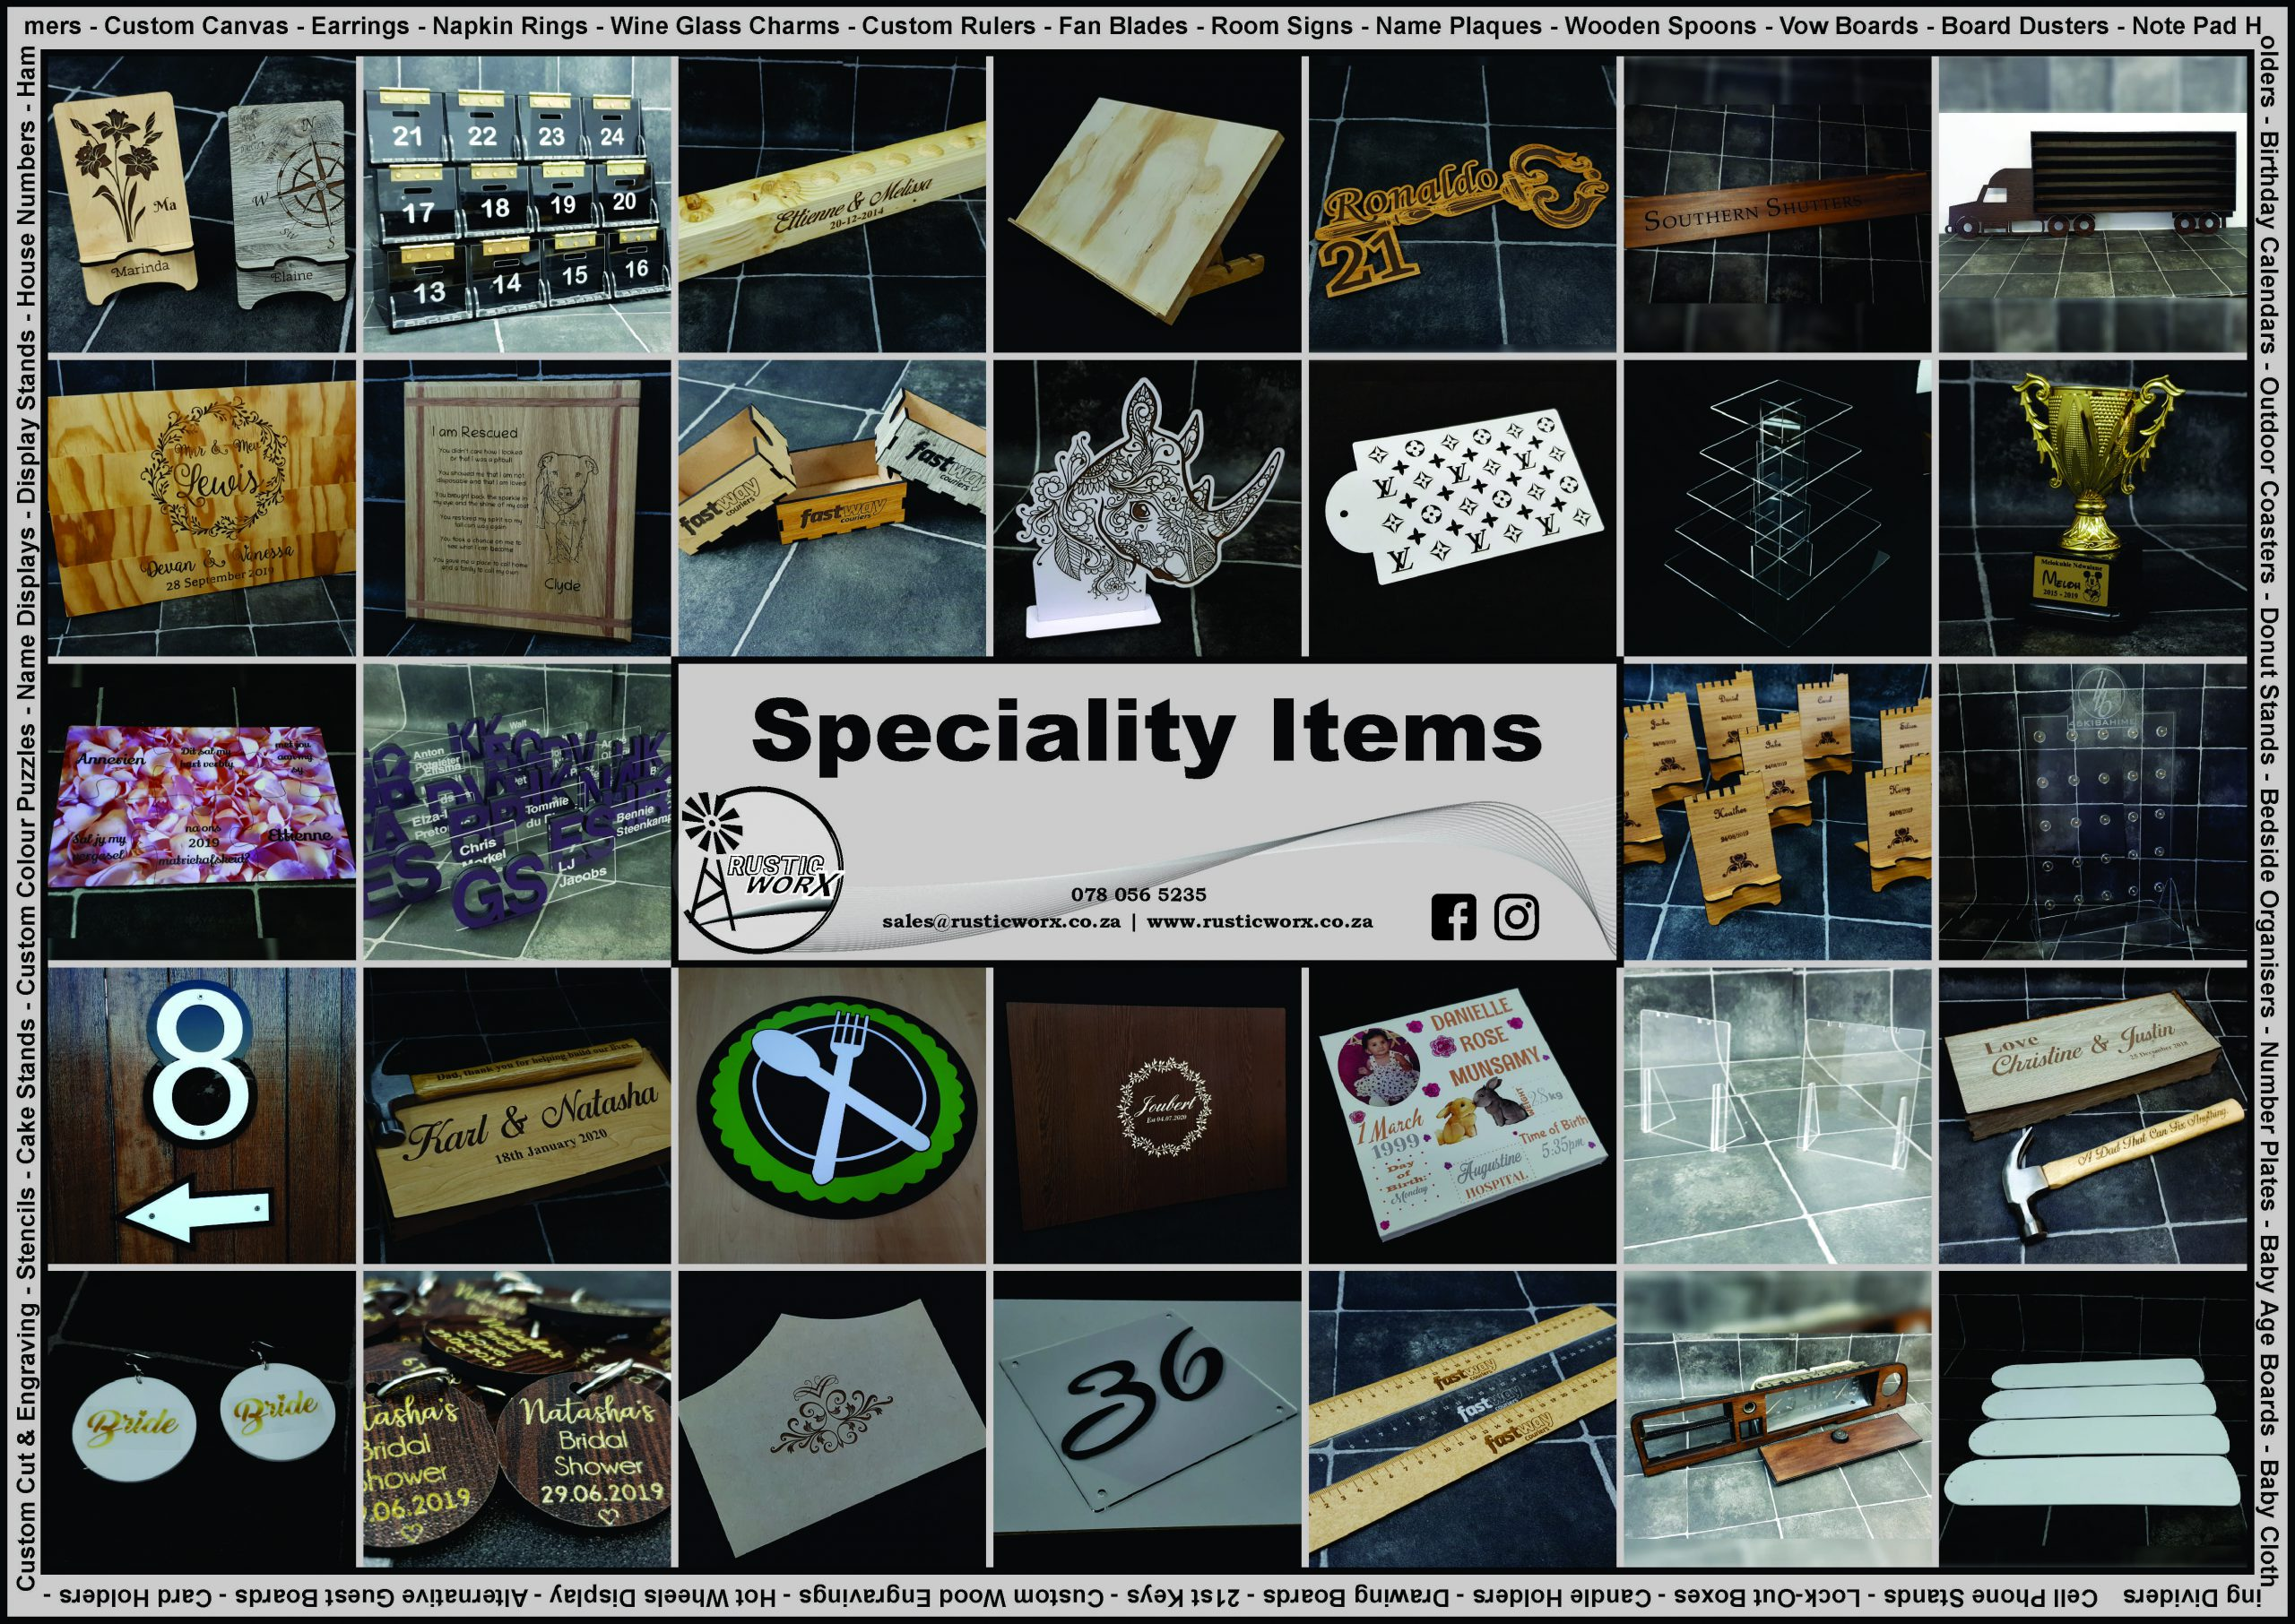 70 Speciality Items 1